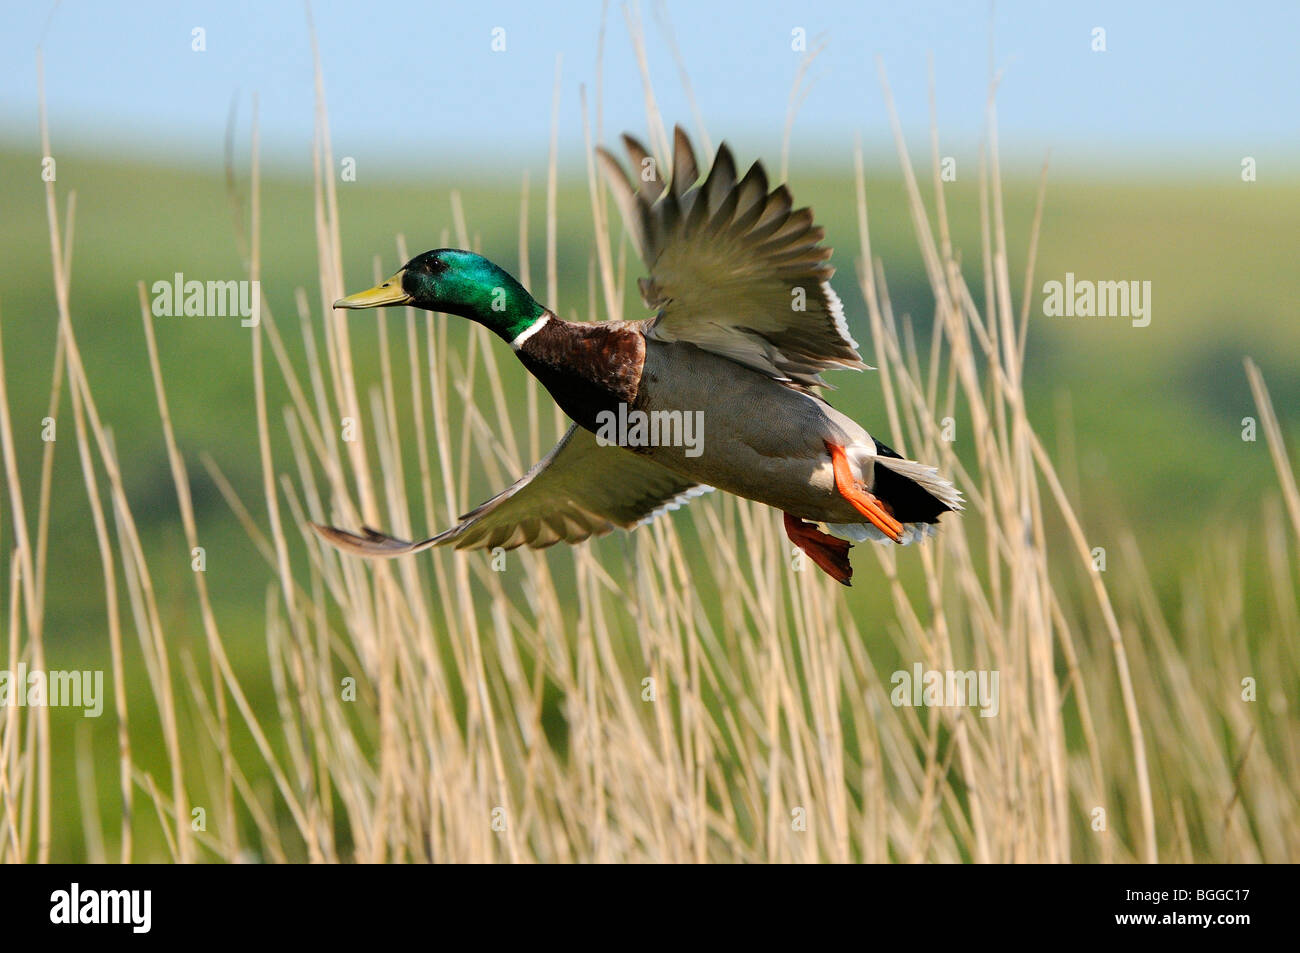 Mallard Duck (Anas platyrhynchos) taking flight from reedbed, Oxfordshire, UK. - Stock Image